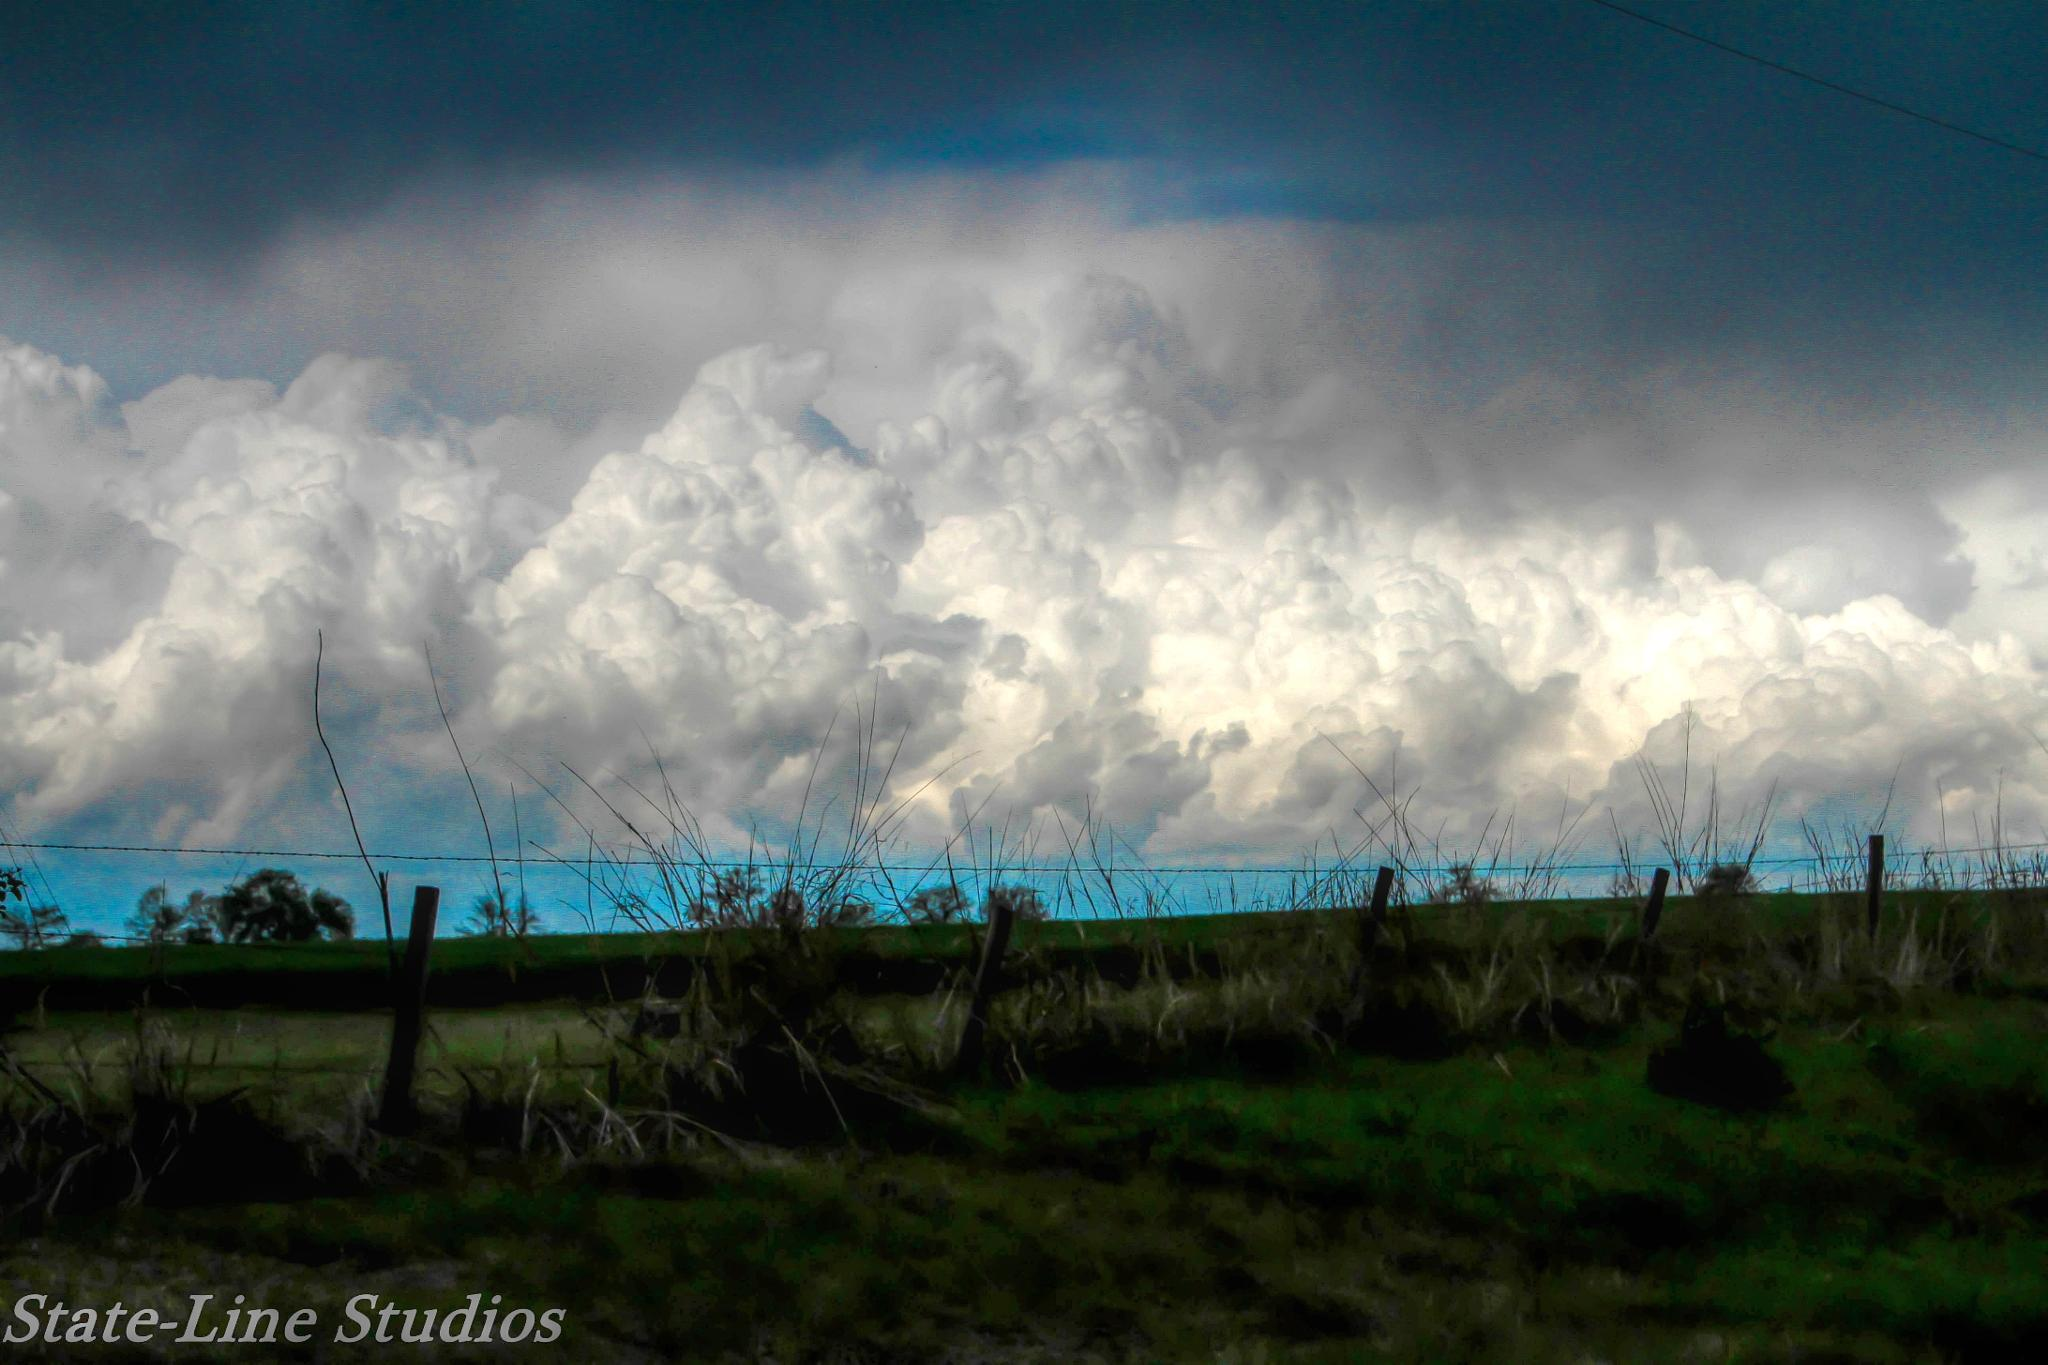 Storms rolling in  by Dixie L Colquhoun